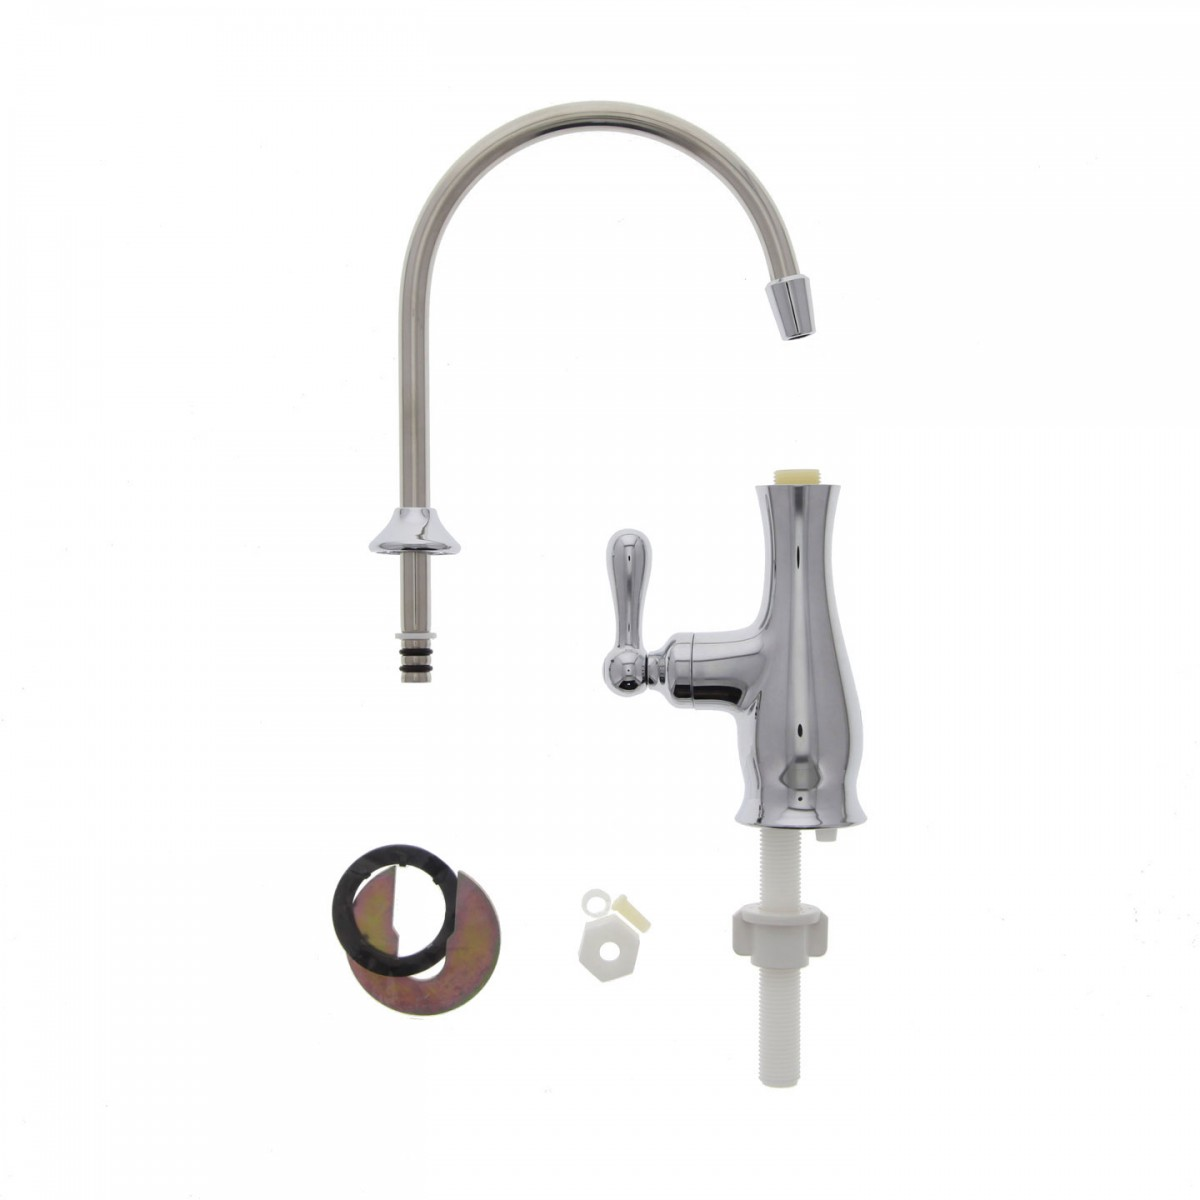 Filtrete FAUC-RP-01 Replacement Faucet | WaterFilters.net